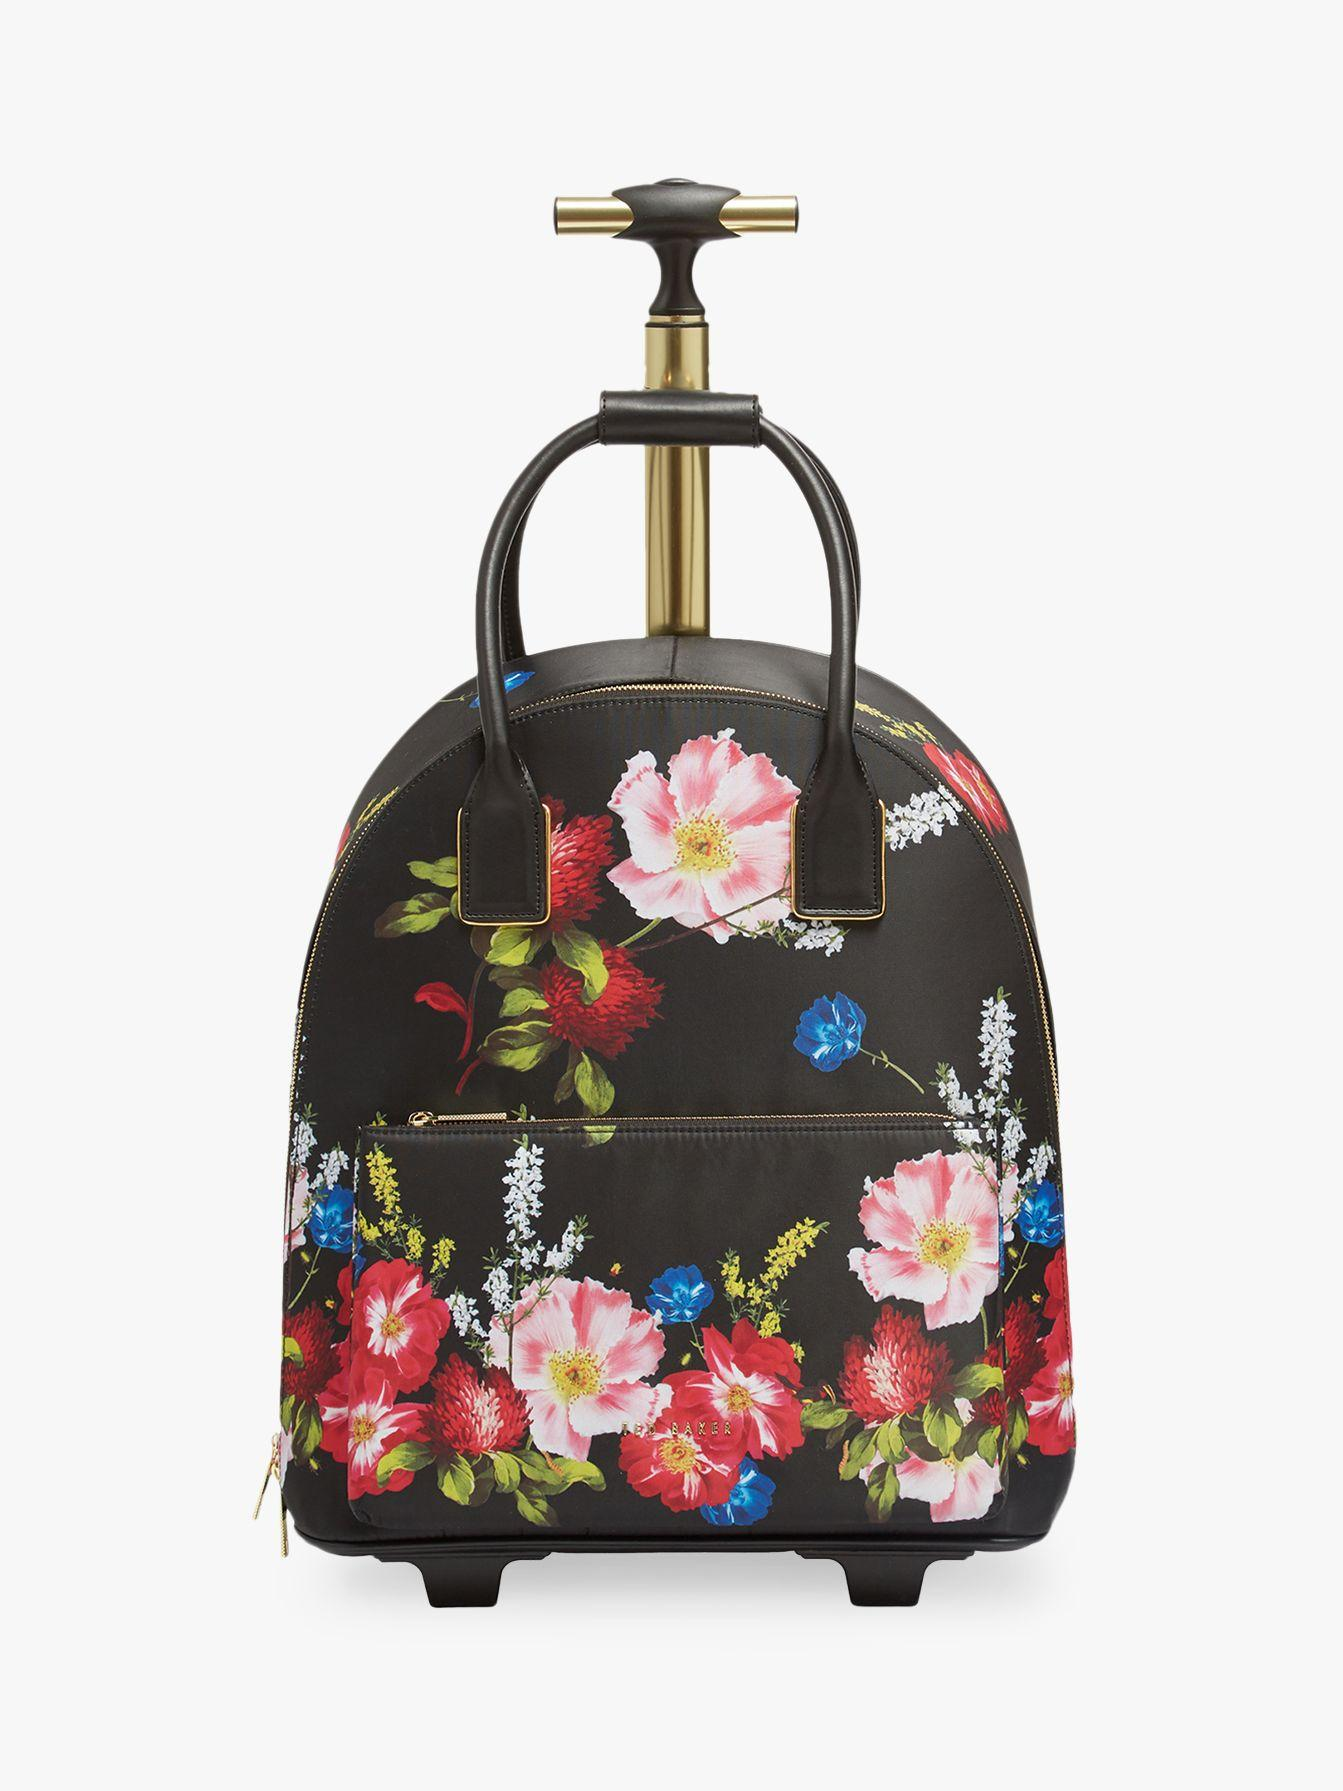 35a49ed51a1c Ted Baker. Women s Black Regaan Berry Sundae Travel Bag. £189 From John  Lewis and Partners